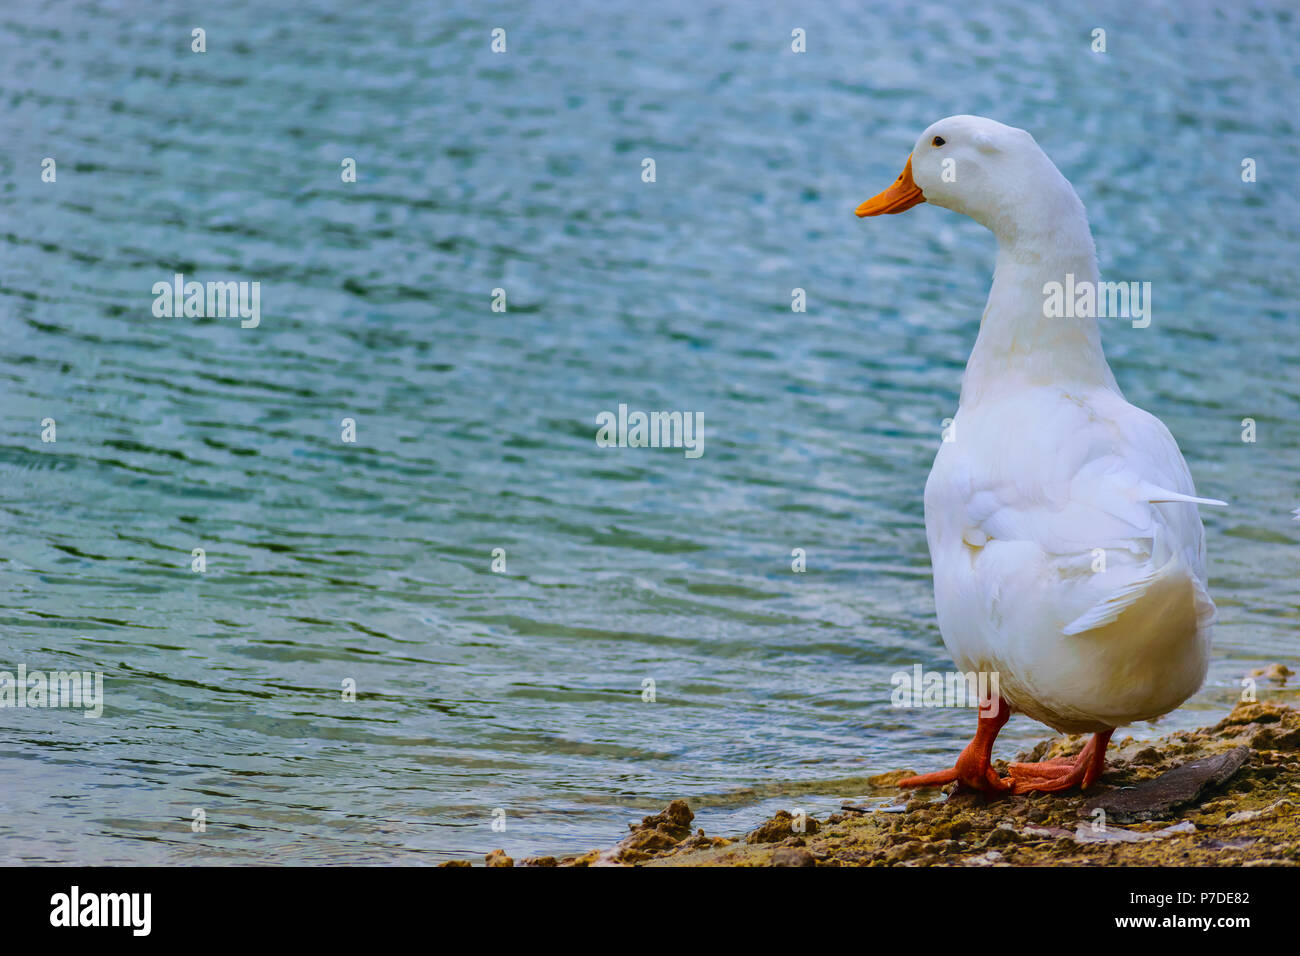 White Pekin Duck standing by the lake on a summer day in Florida. - Stock Image